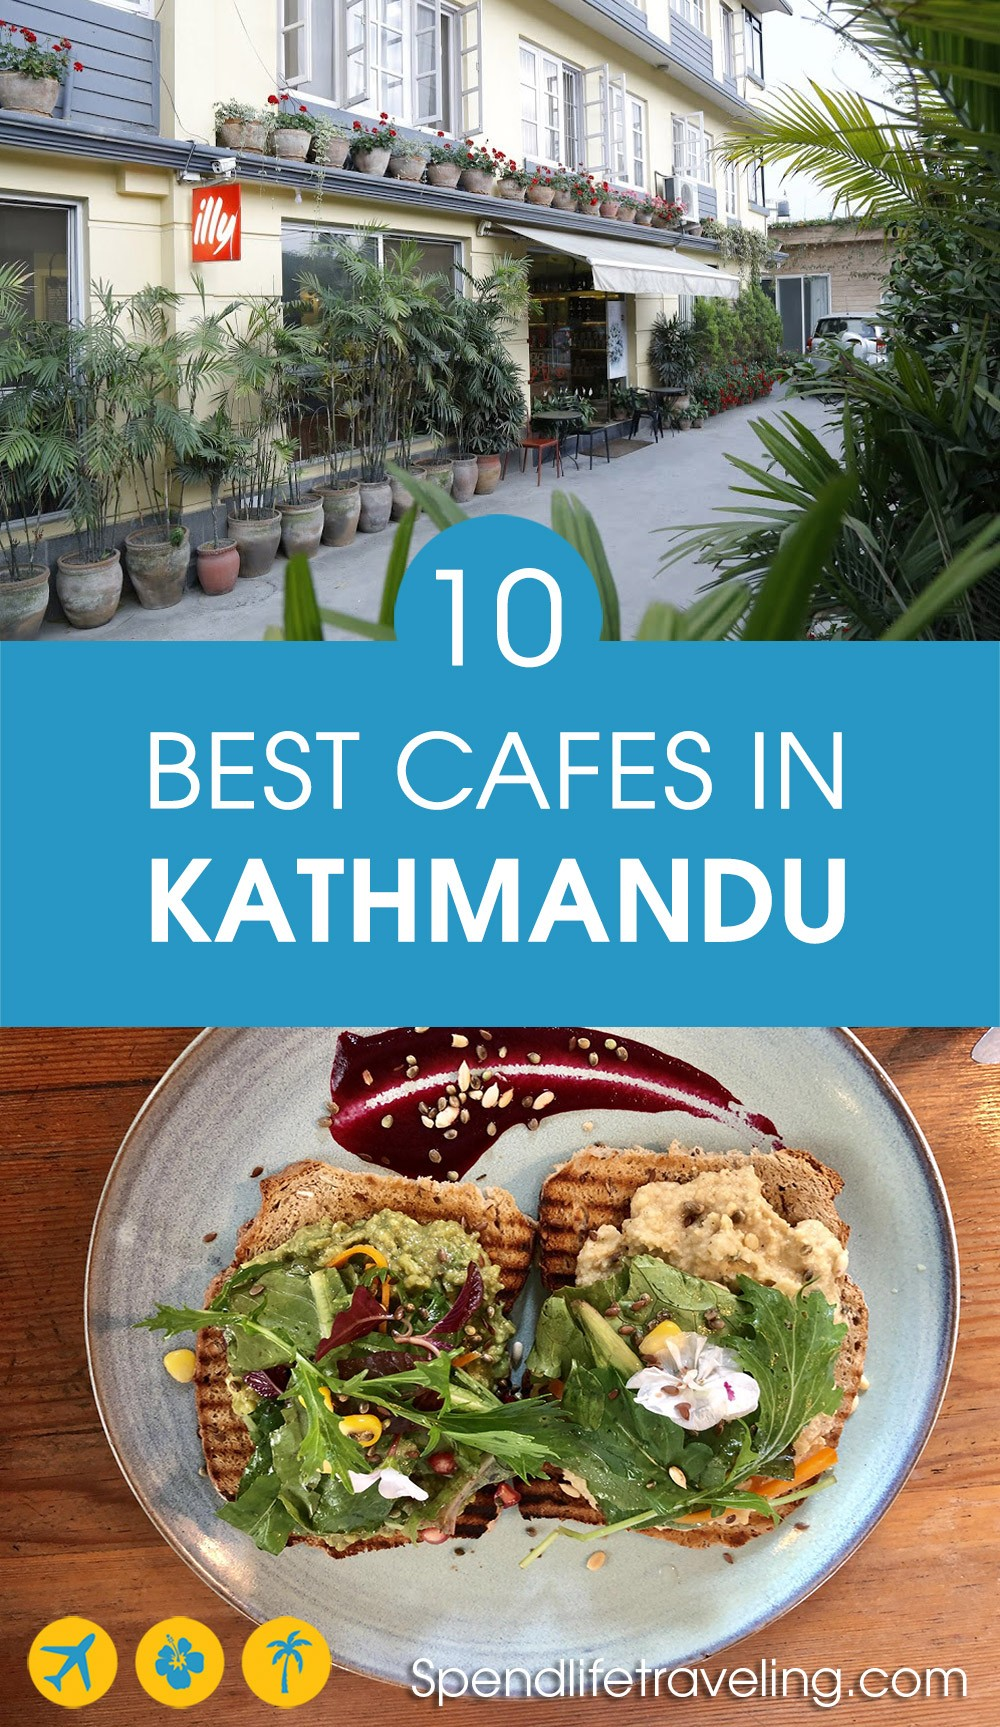 Looking for the best coffee, great food or a good cafe to work from? These are 10 of the best cafes and coffee shops in #Kathmandu. #travelNepal